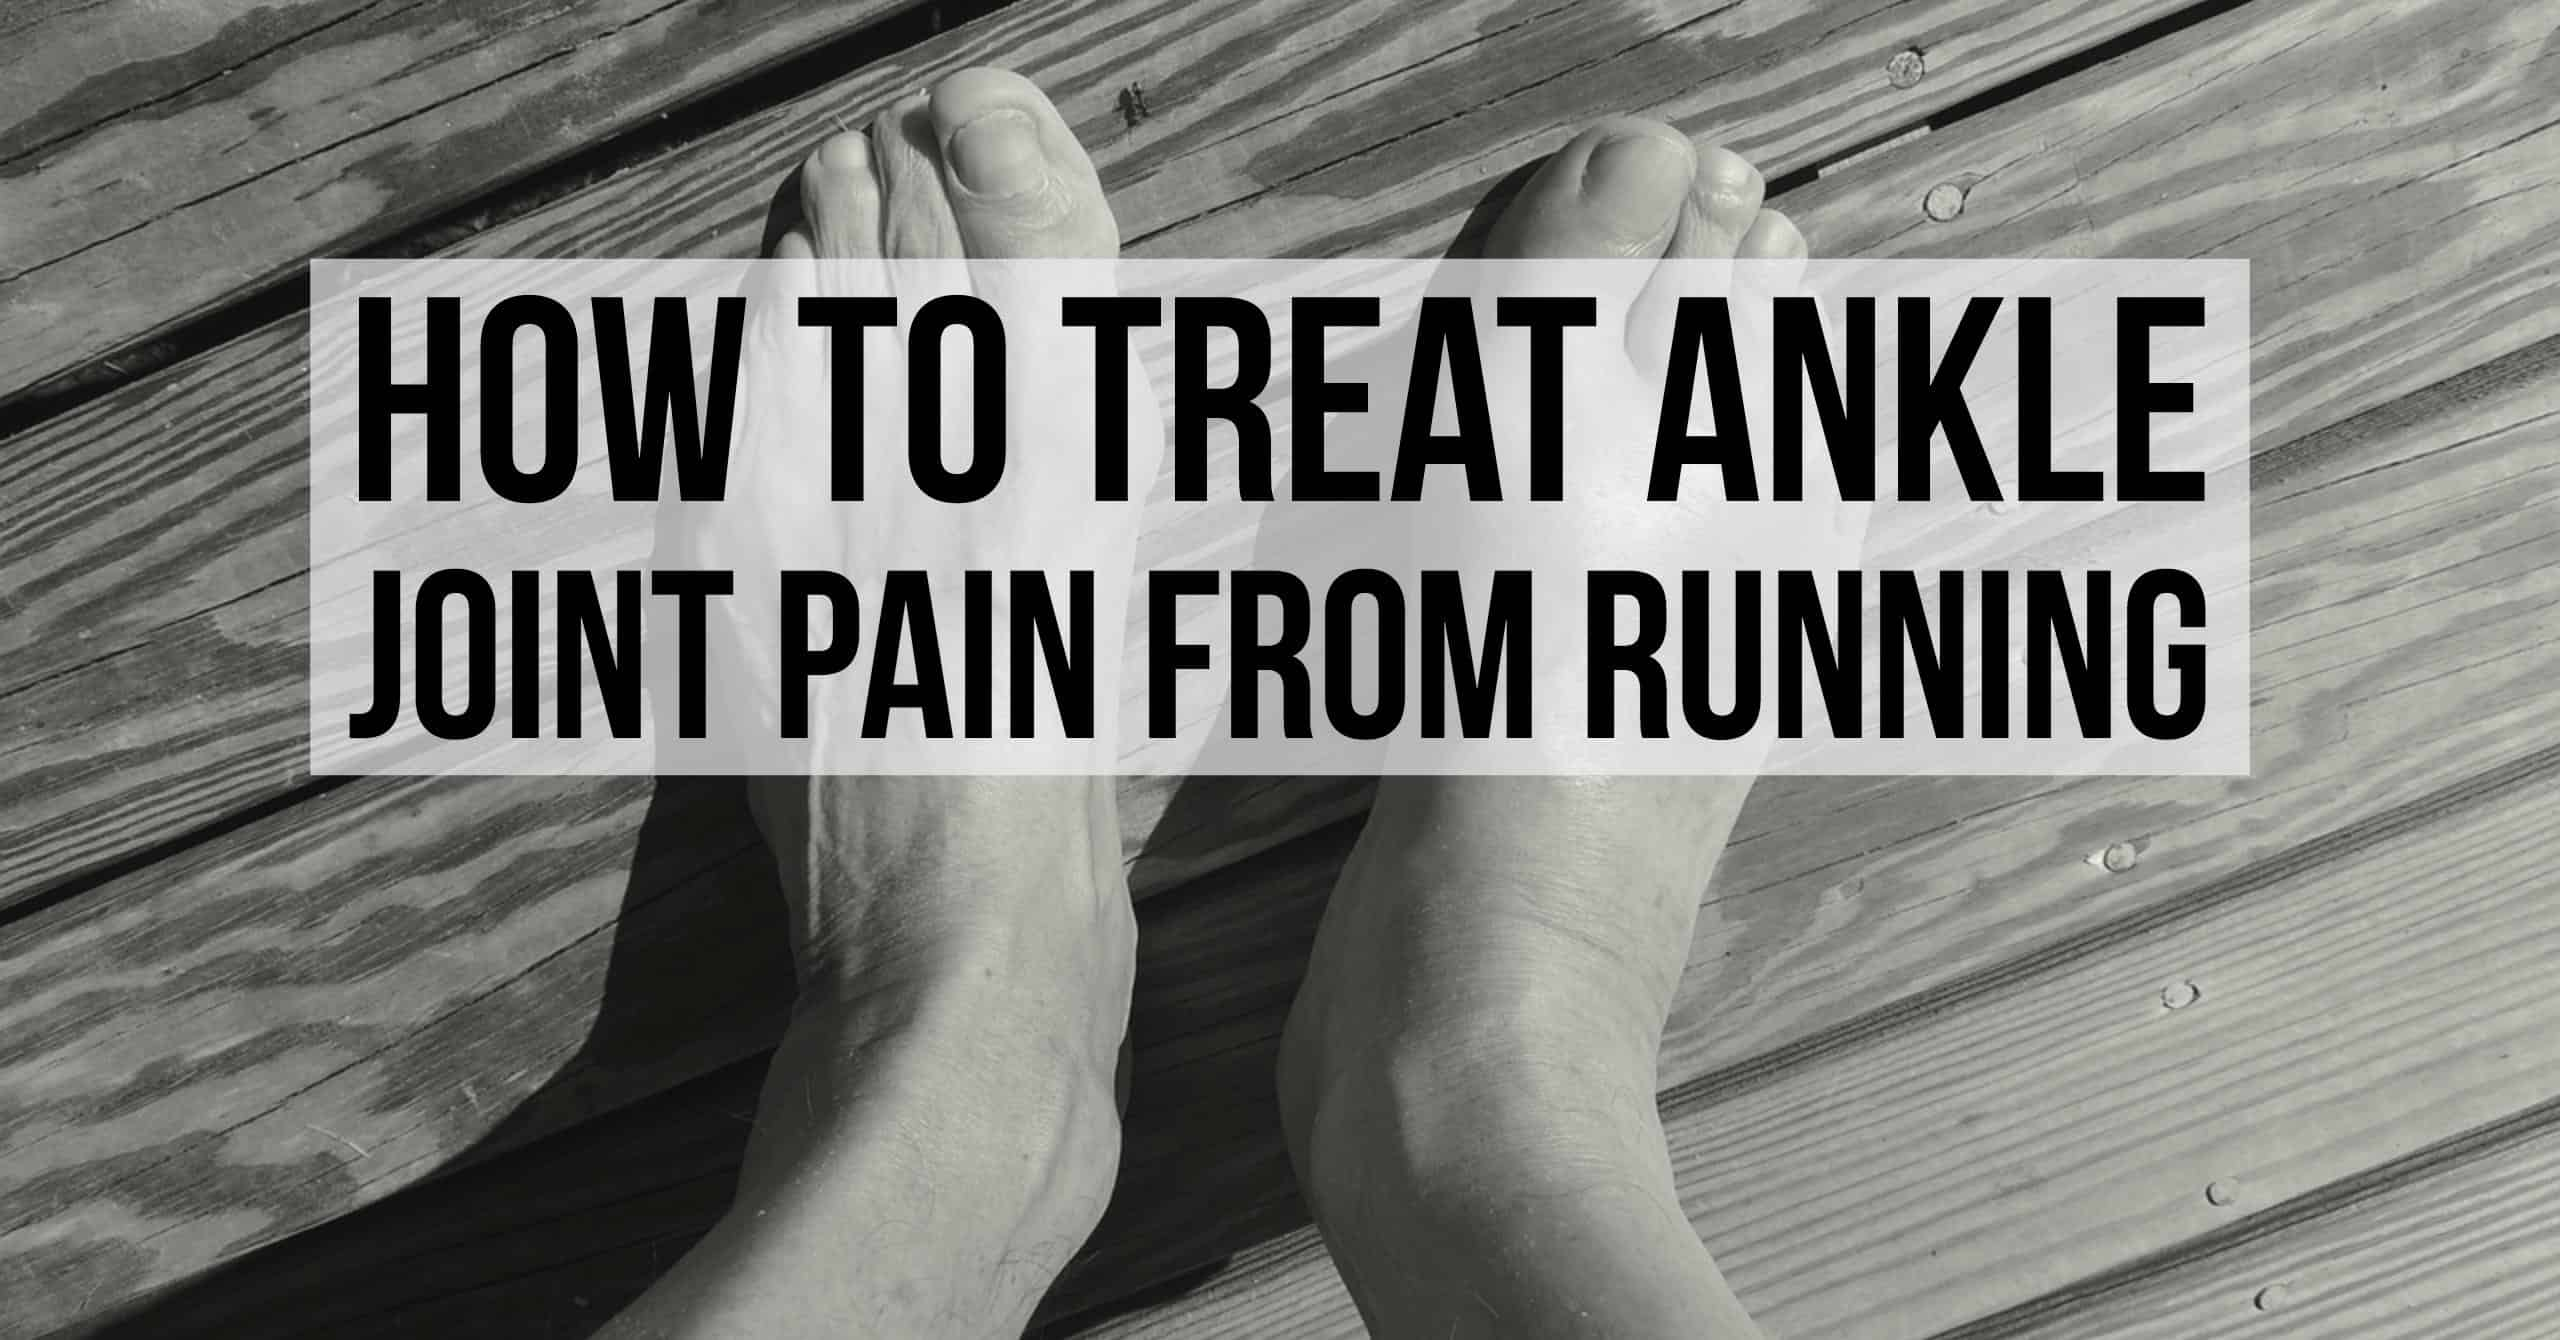 Most of ankle injuries by runners involve Achilles tendinitis or sprains. A lot of the pain radiates from ankle joint pain. We break down how to treat ankle joint pain from running with several at-home remedies